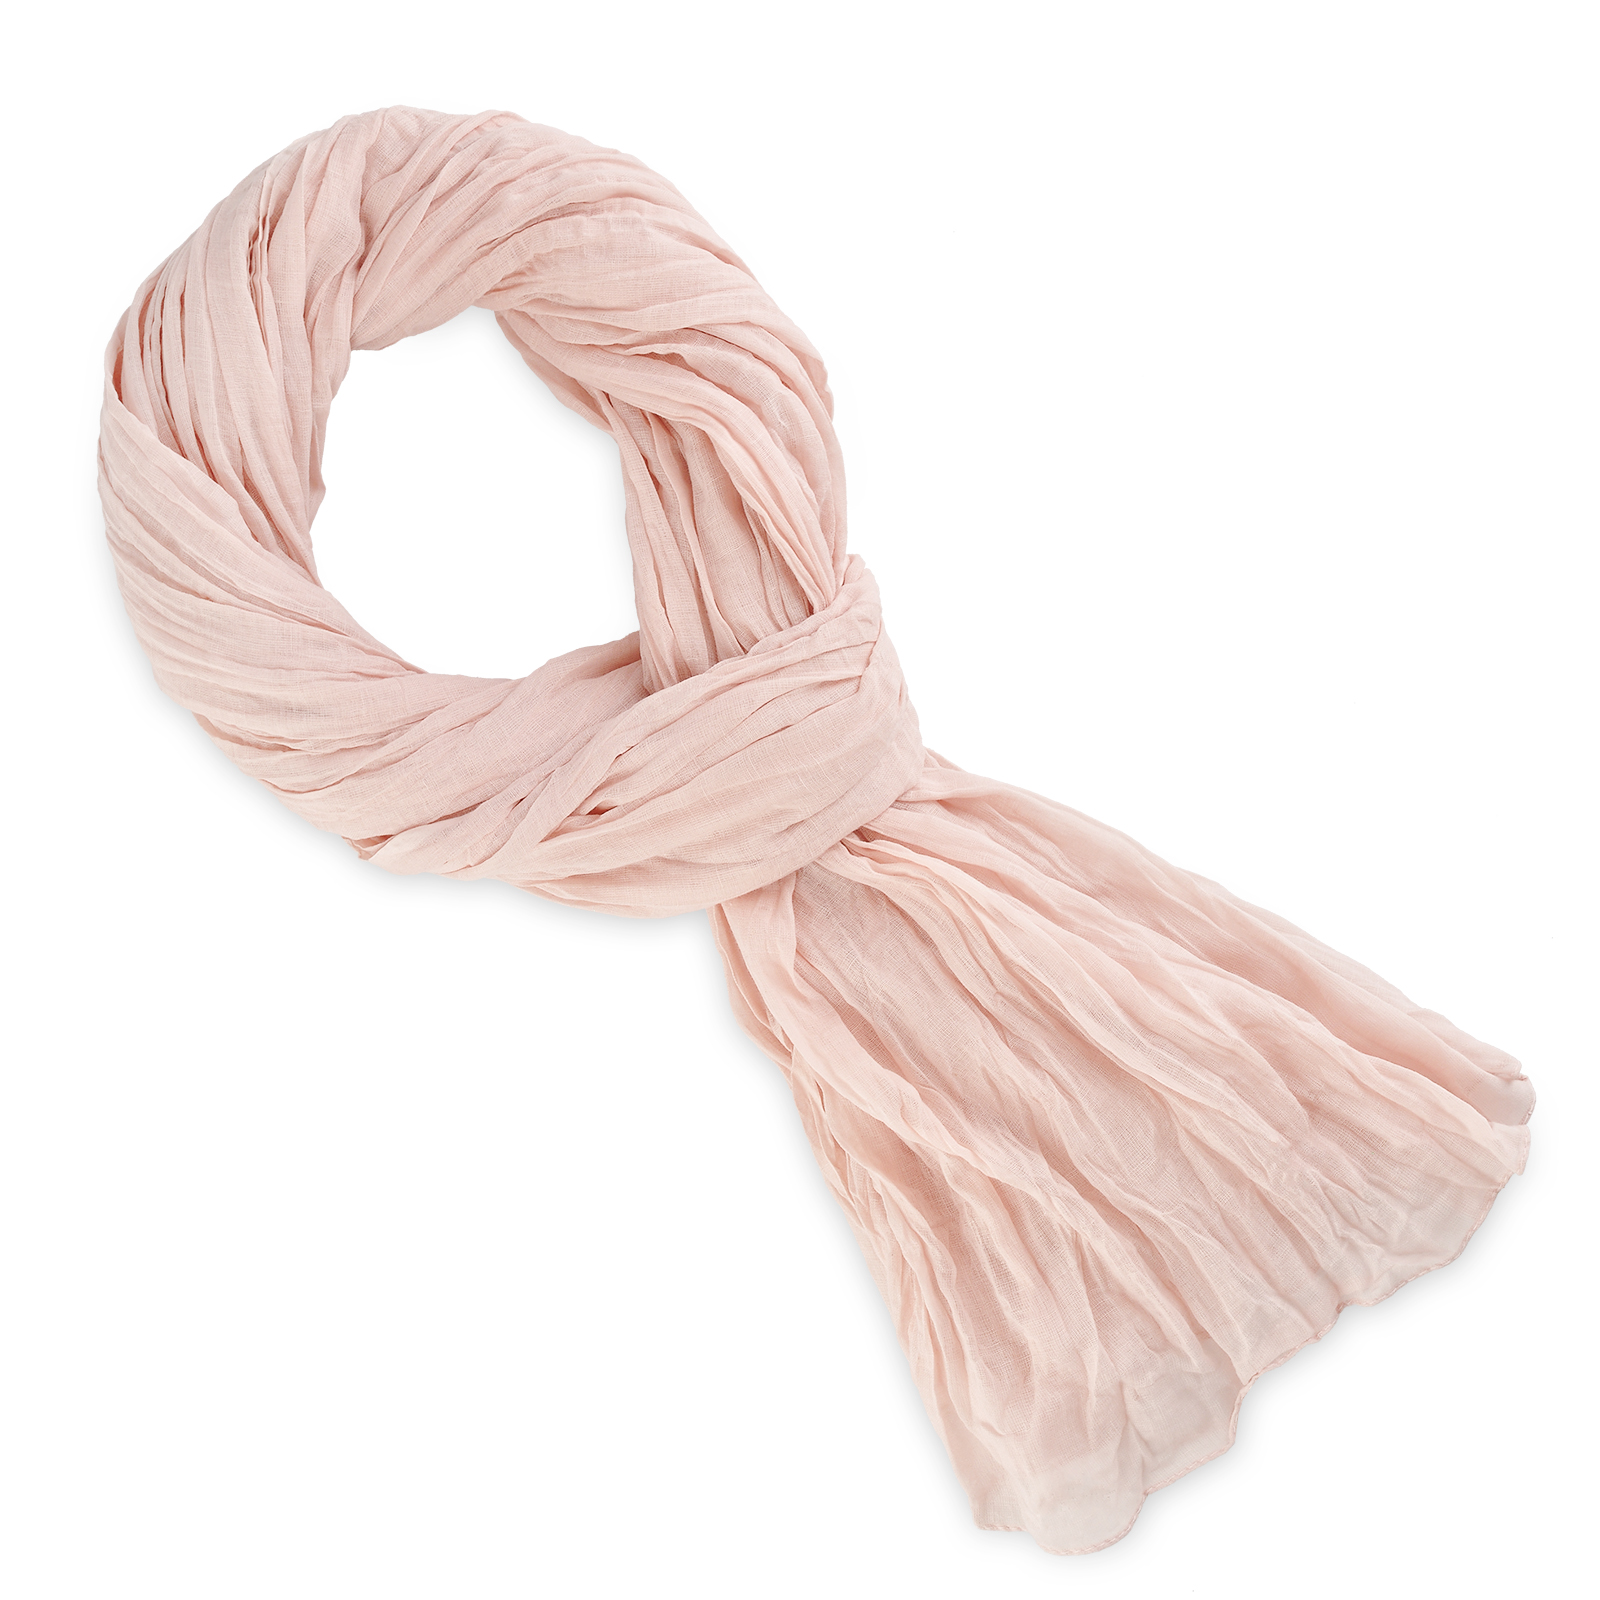 AT-03149-F16-cheche-coton-rose-coquille-oeuf